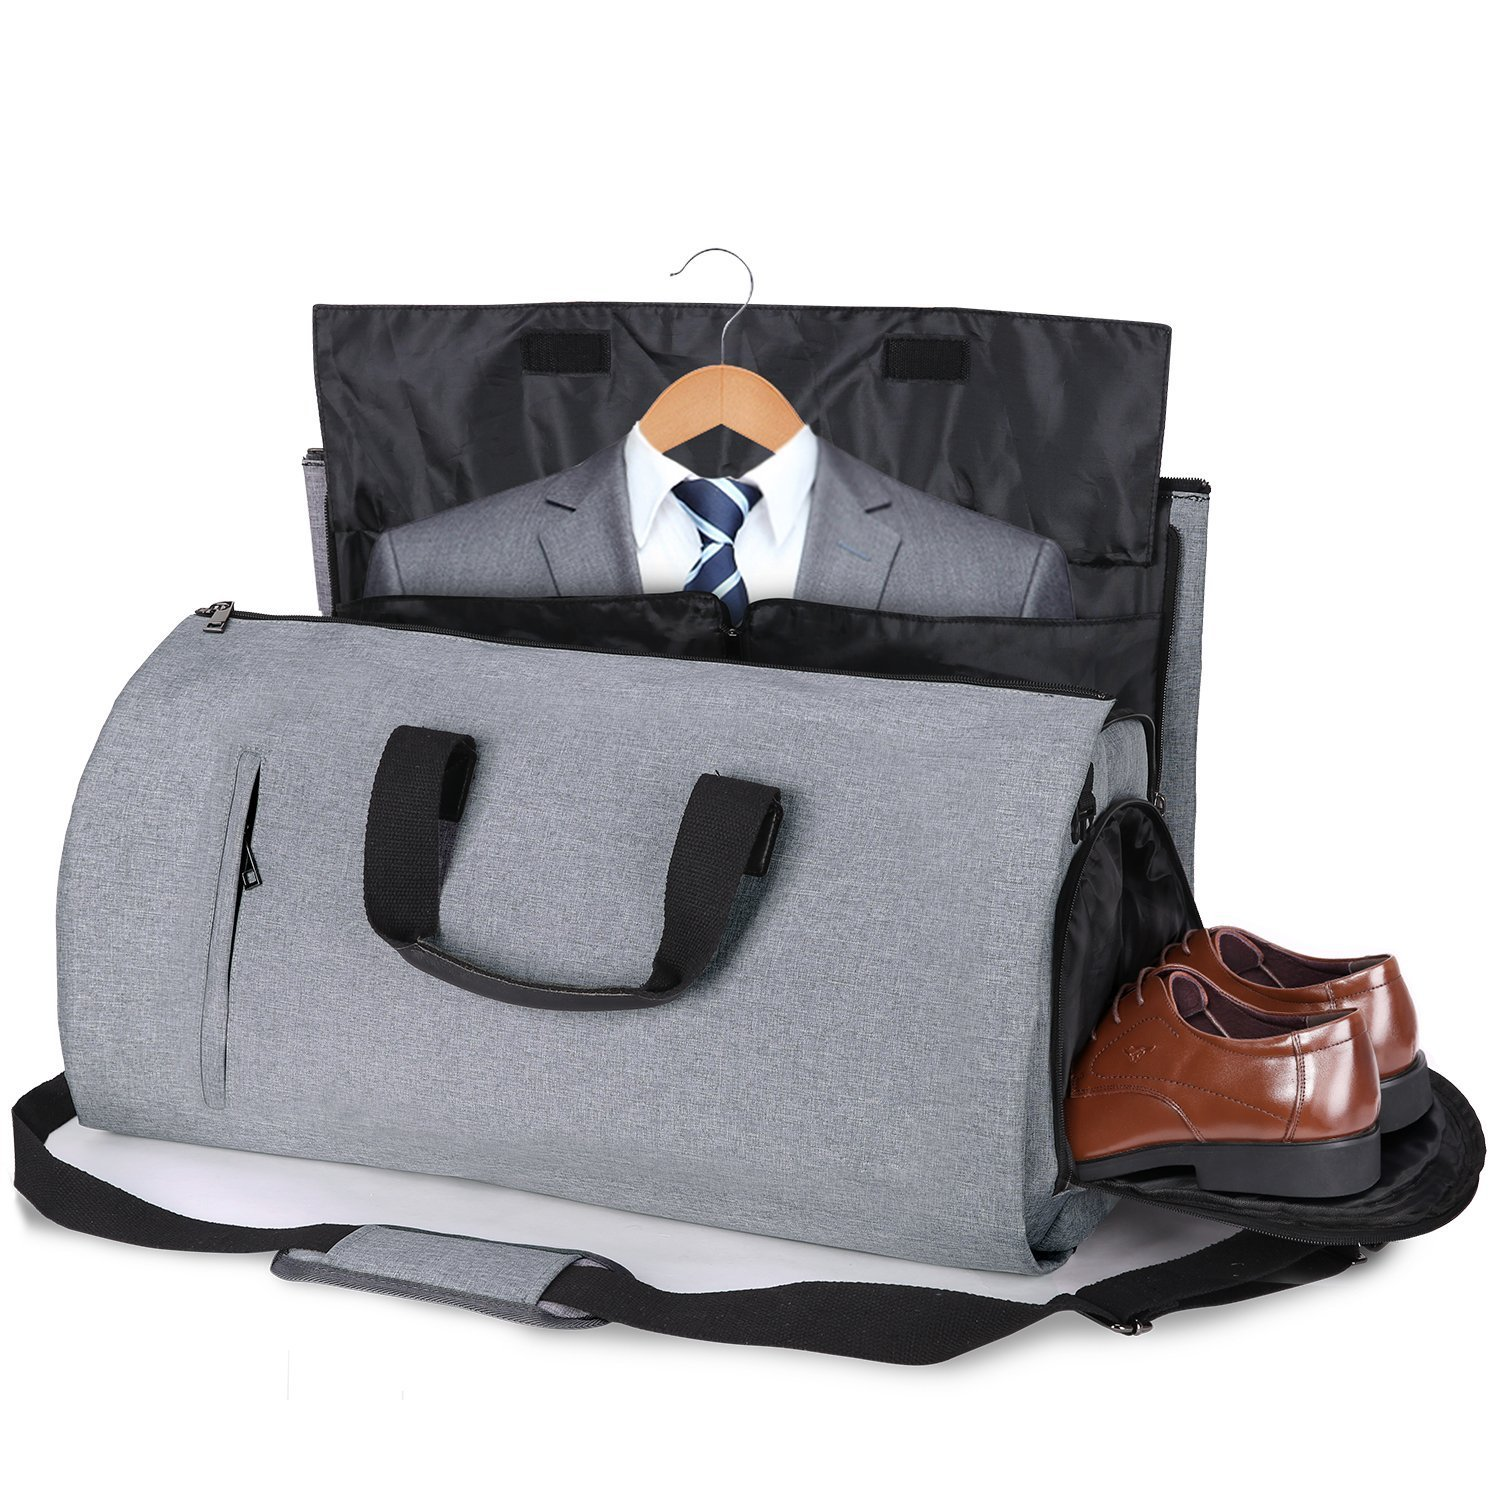 Carry-on Garment Bag Suit Travel Bag Duffel Bag Weekend Bag Flight Bag Gym Bag - Grey